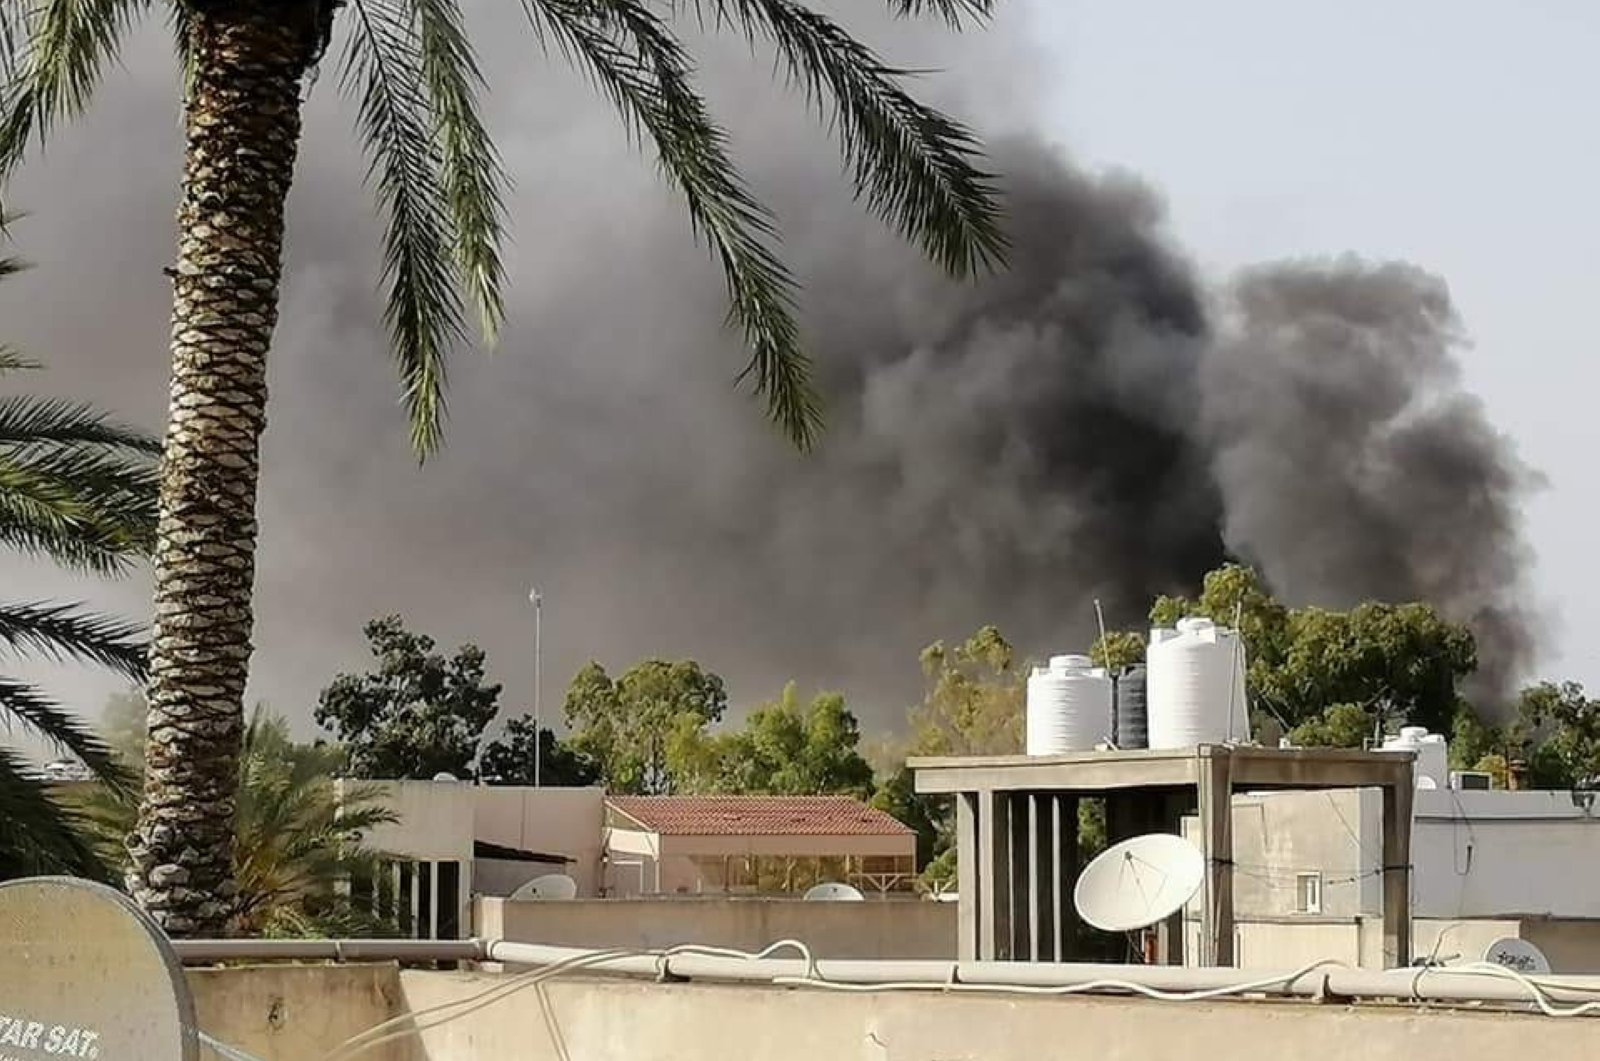 Smoke rises from the site of a bombing in Tripoli, Libya, May 16, 2020. (IHA Photo)